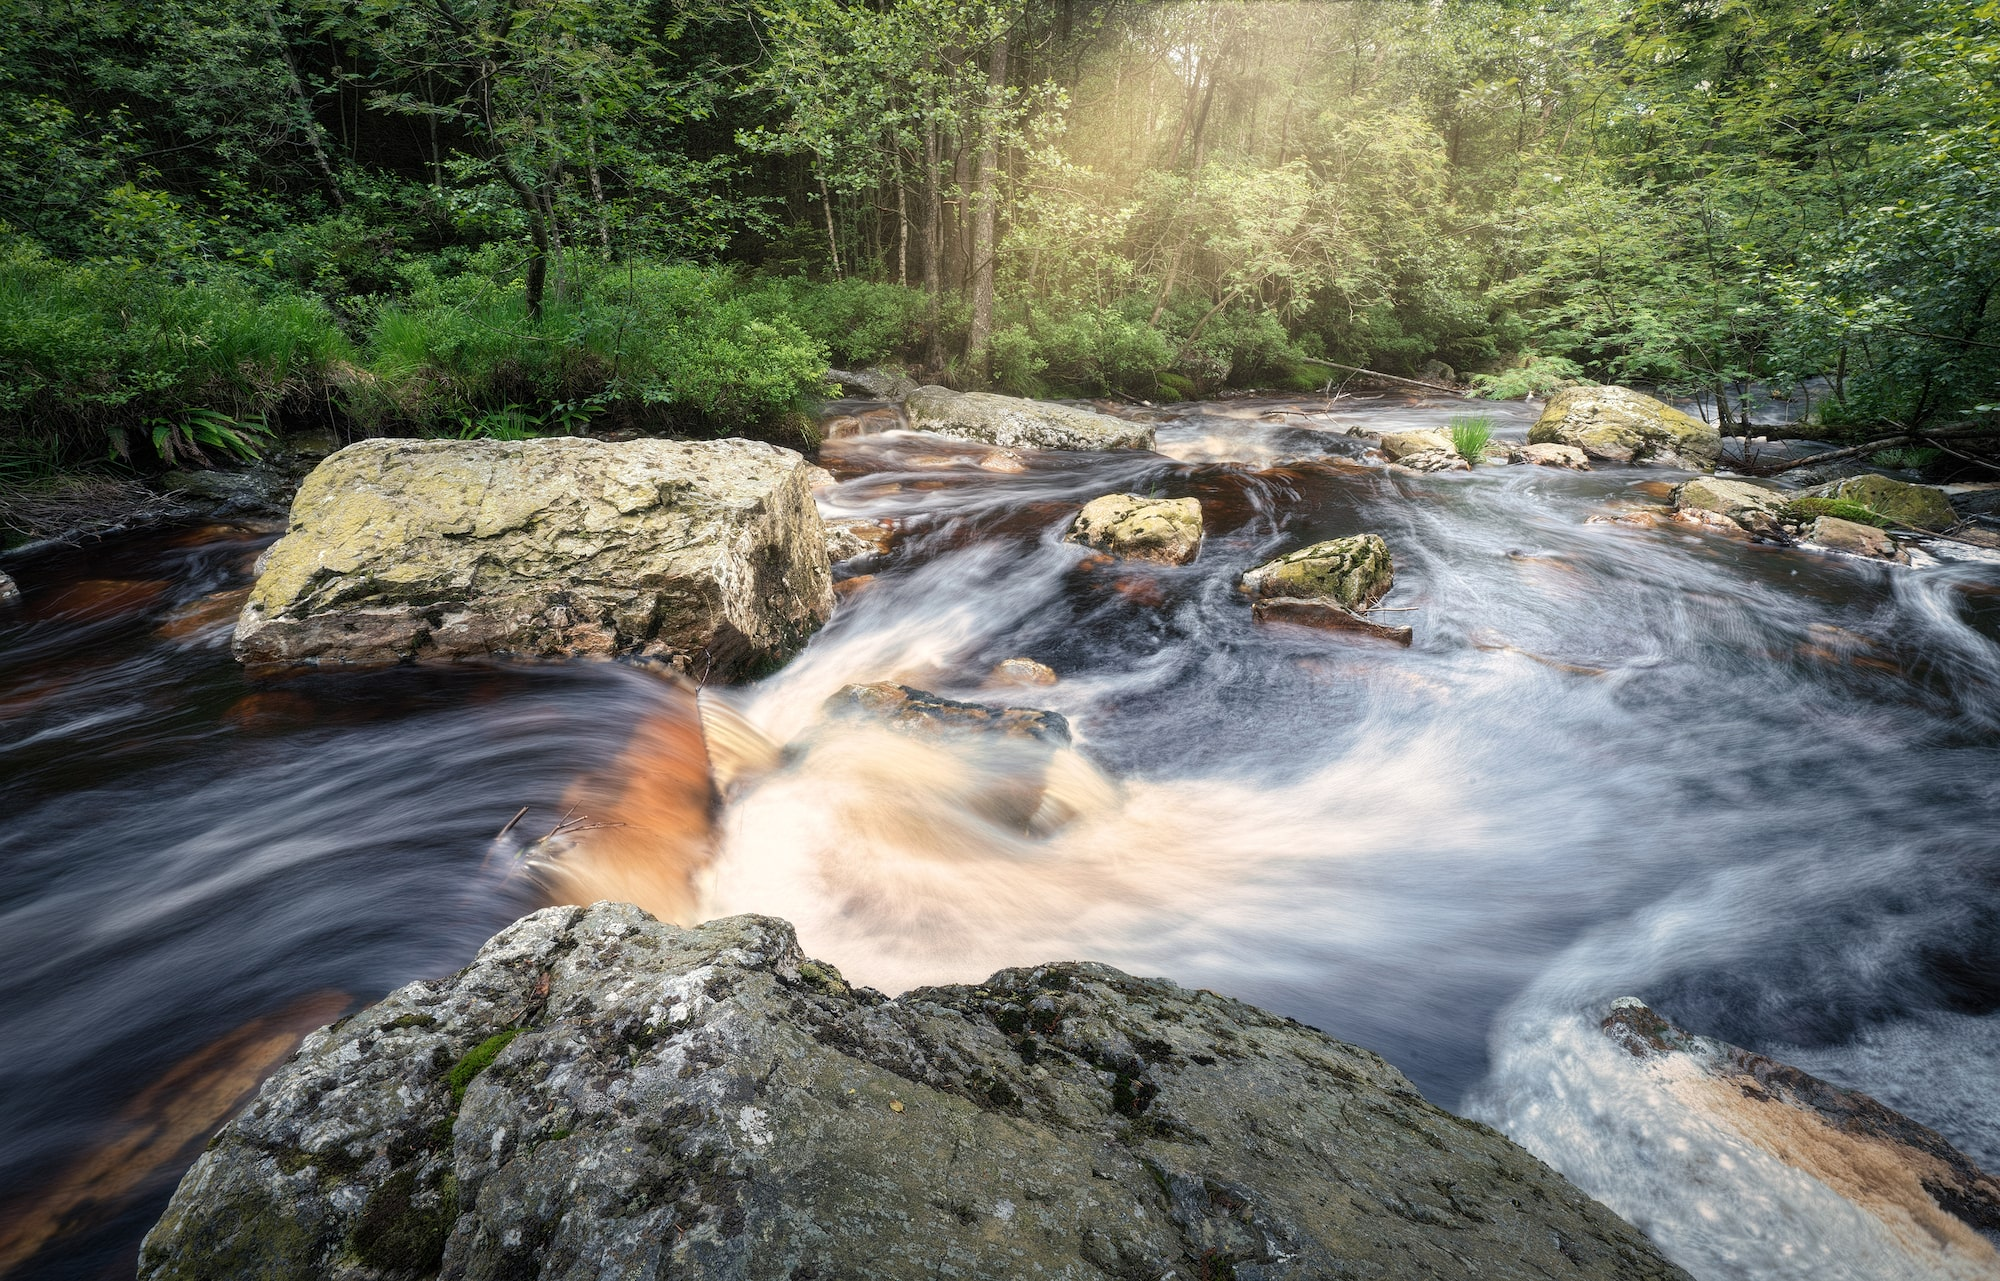 michael schaake sony alpha 7RM4 a fast flowing river captured in slow motion against the rocks